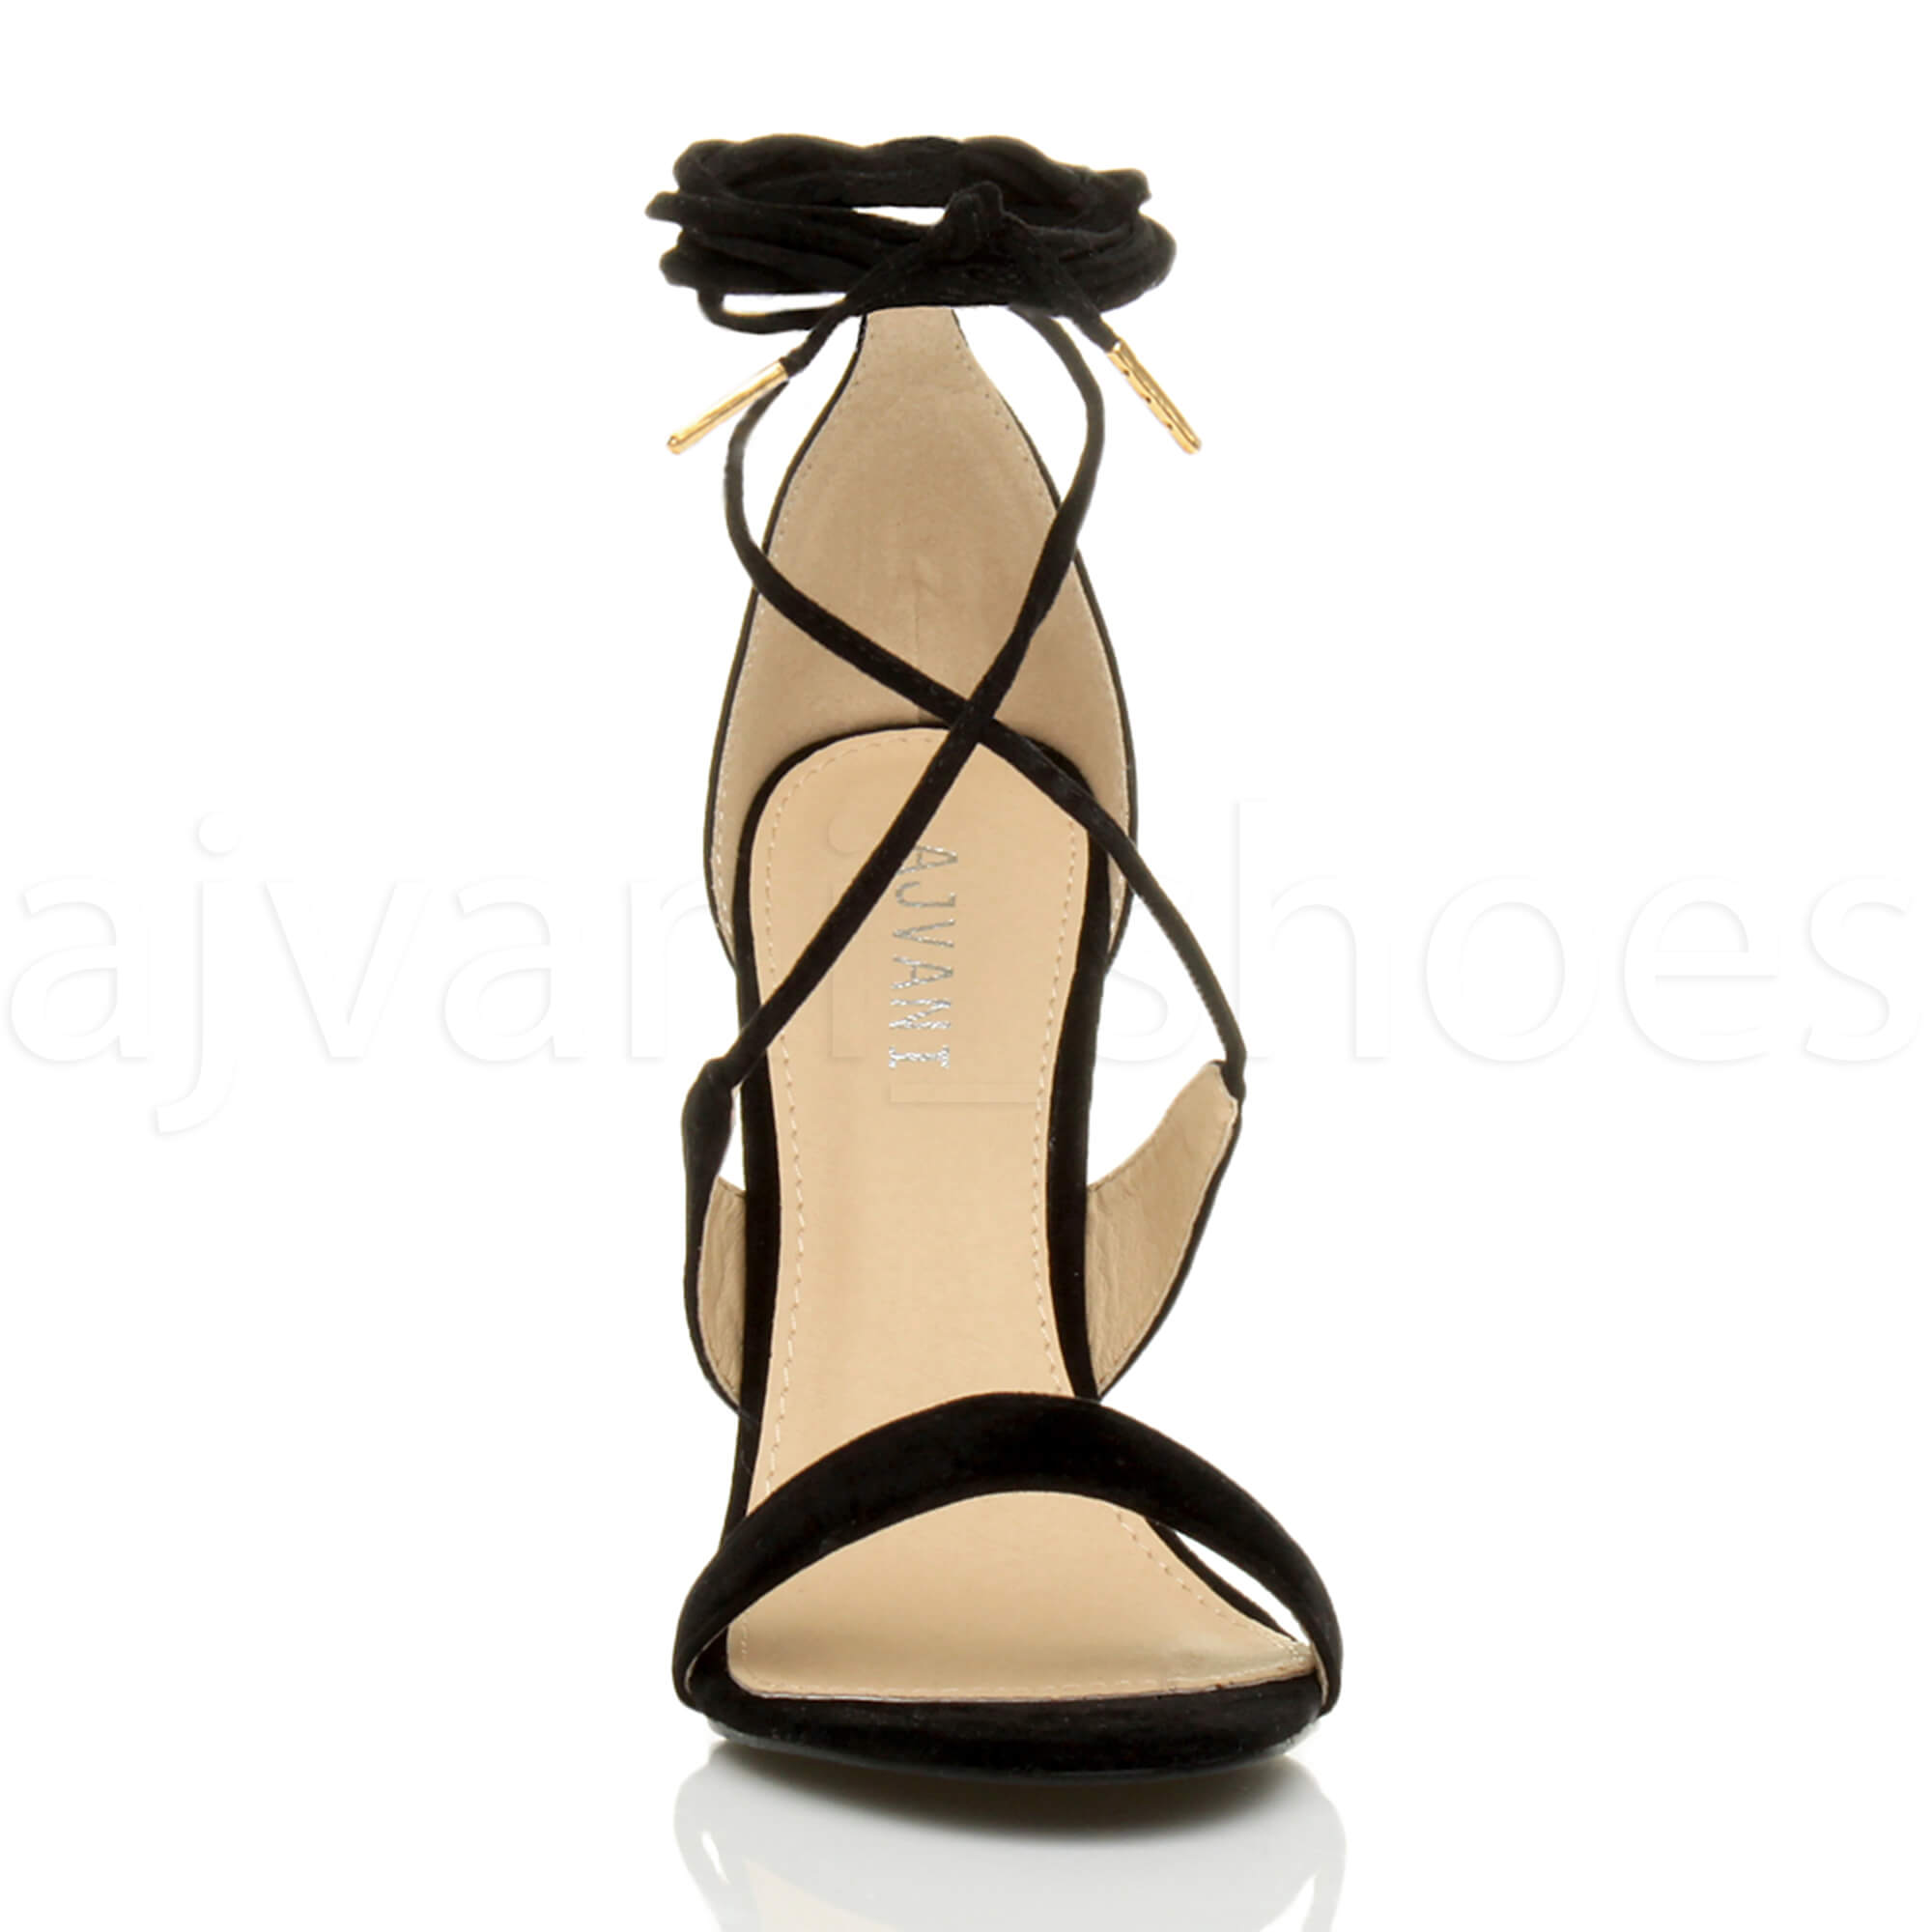 WOMENS-LADIES-HIGH-HEEL-BARELY-THERE-STRAPPY-LACE-TIE-UP-SANDALS-SHOES-SIZE thumbnail 13